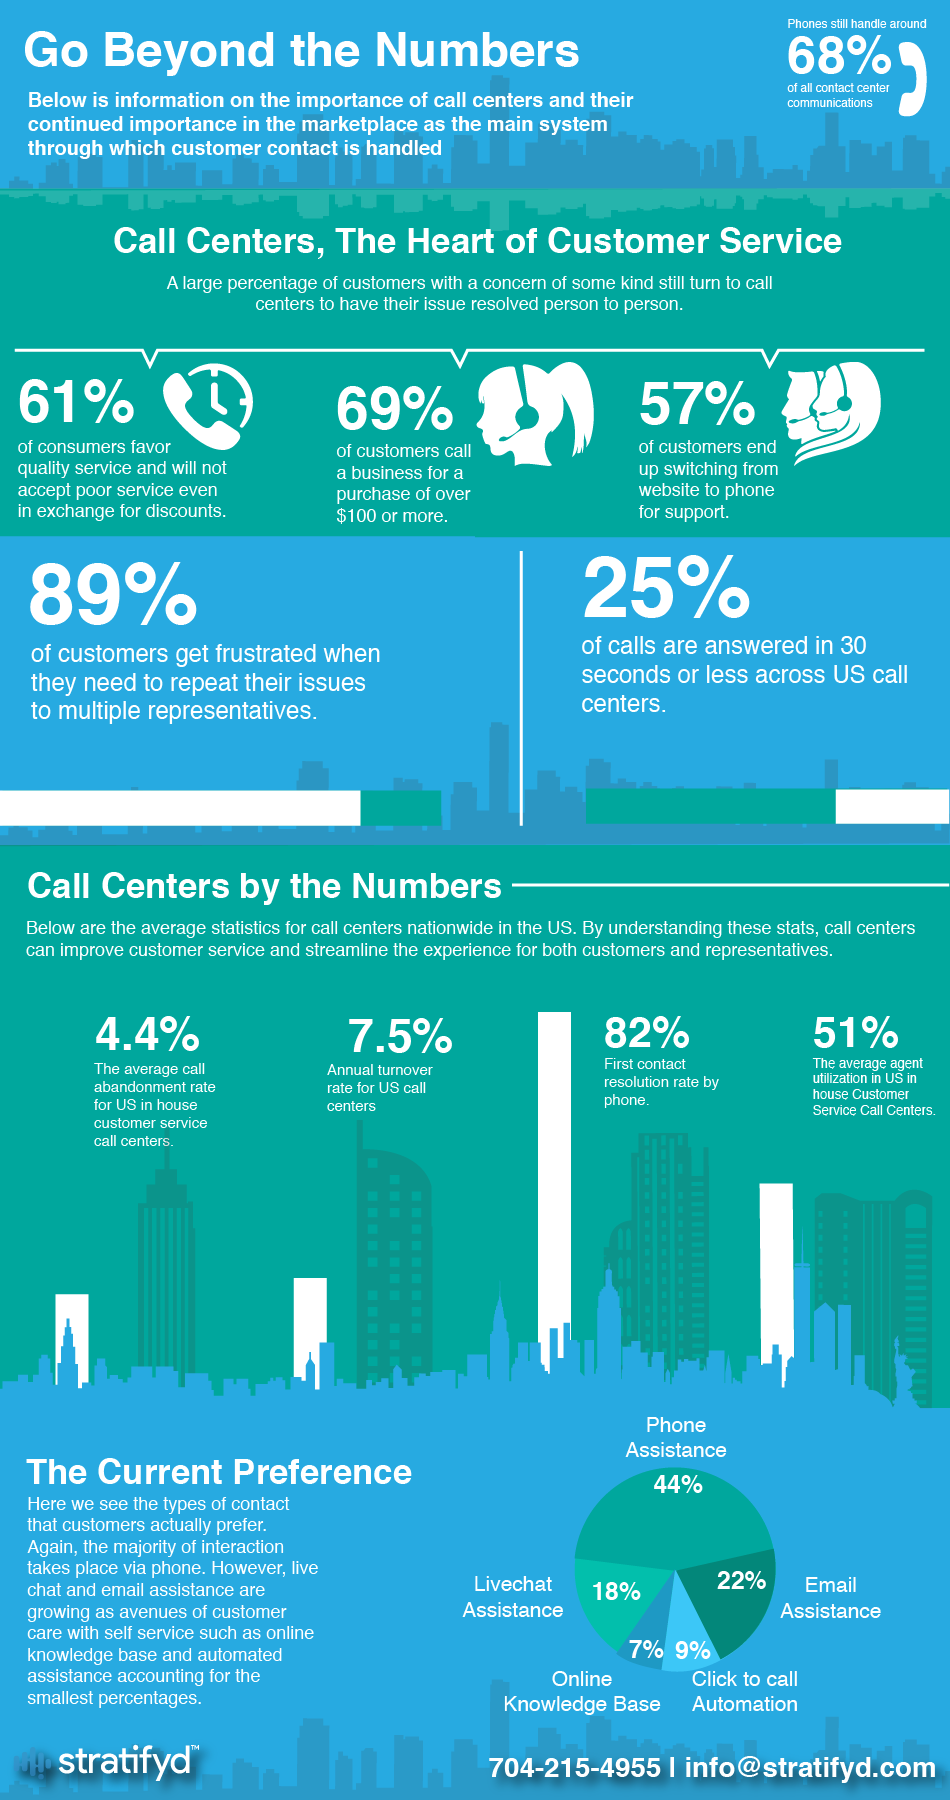 call-center-infographic-stratifyd-image-1